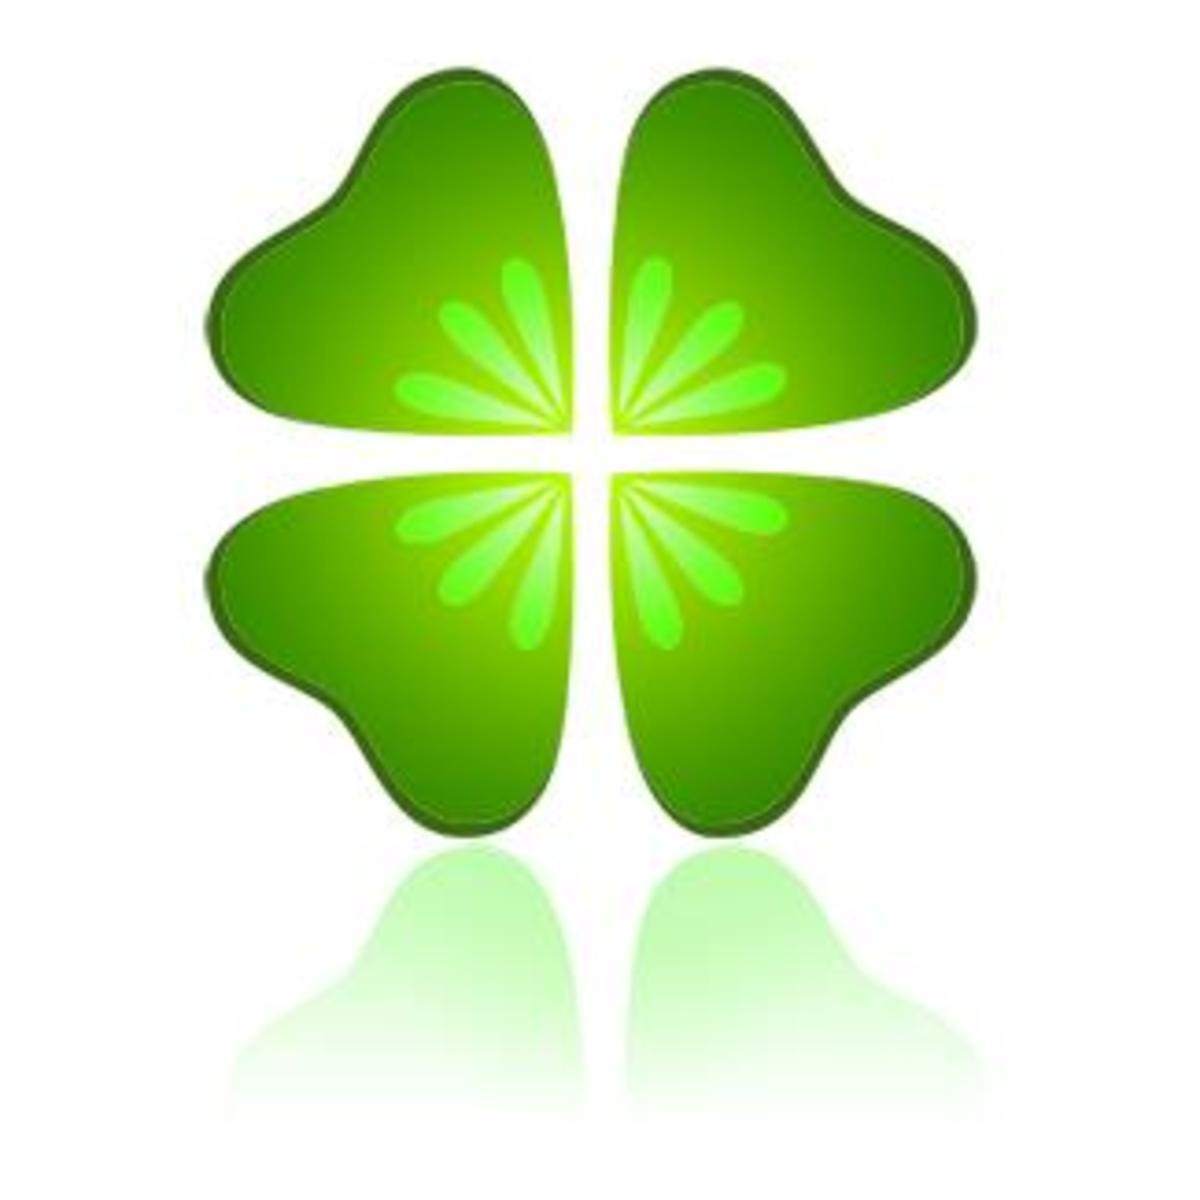 Four-Leaf Clover with Reflection